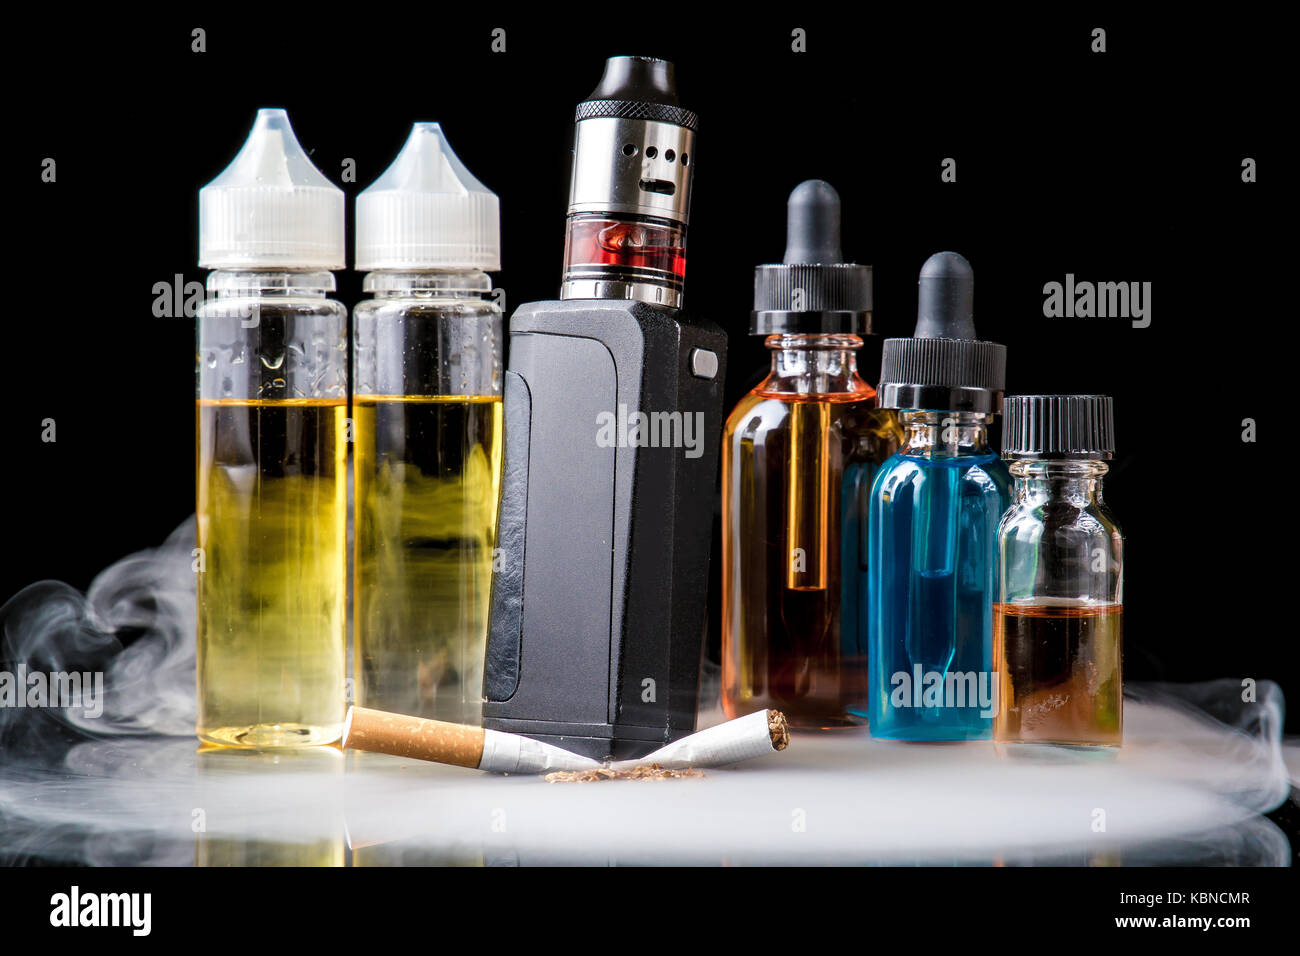 Modern vaporiser versus old tobacco cigarette in smoke Stock Photo